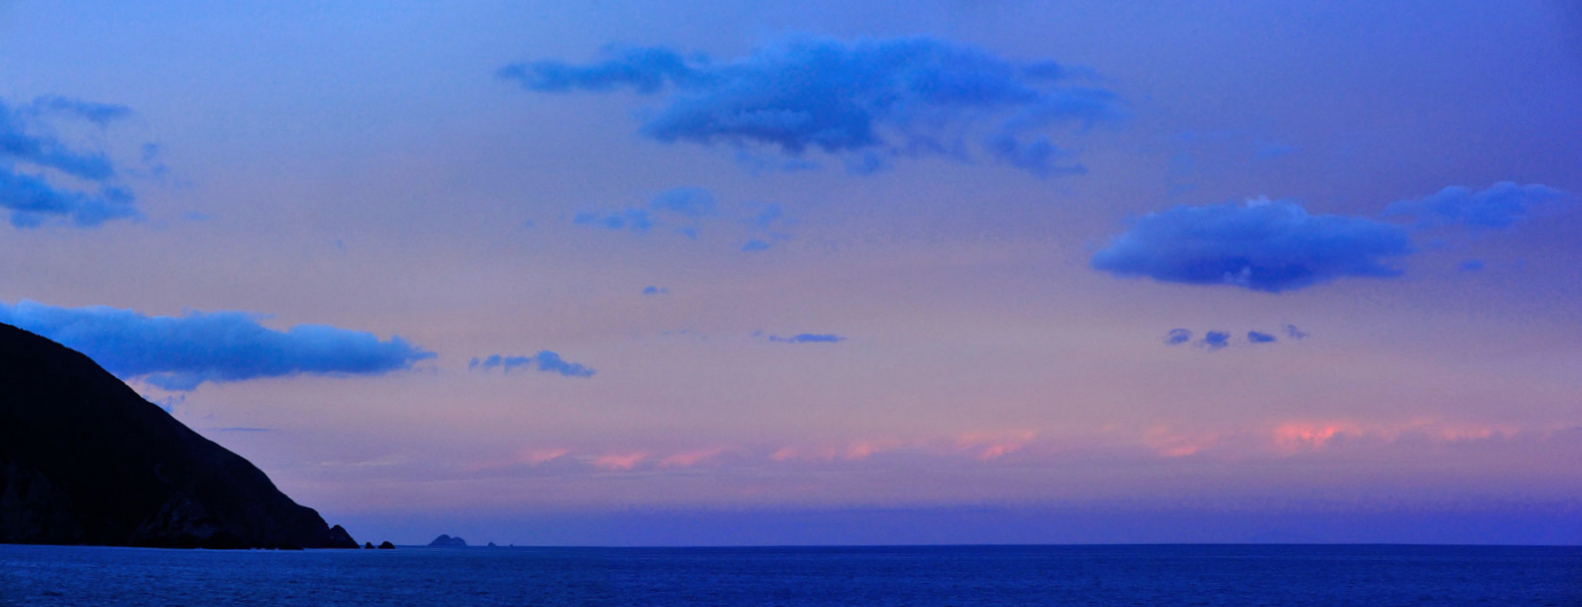 5090. Cook Strait Twilight Pano